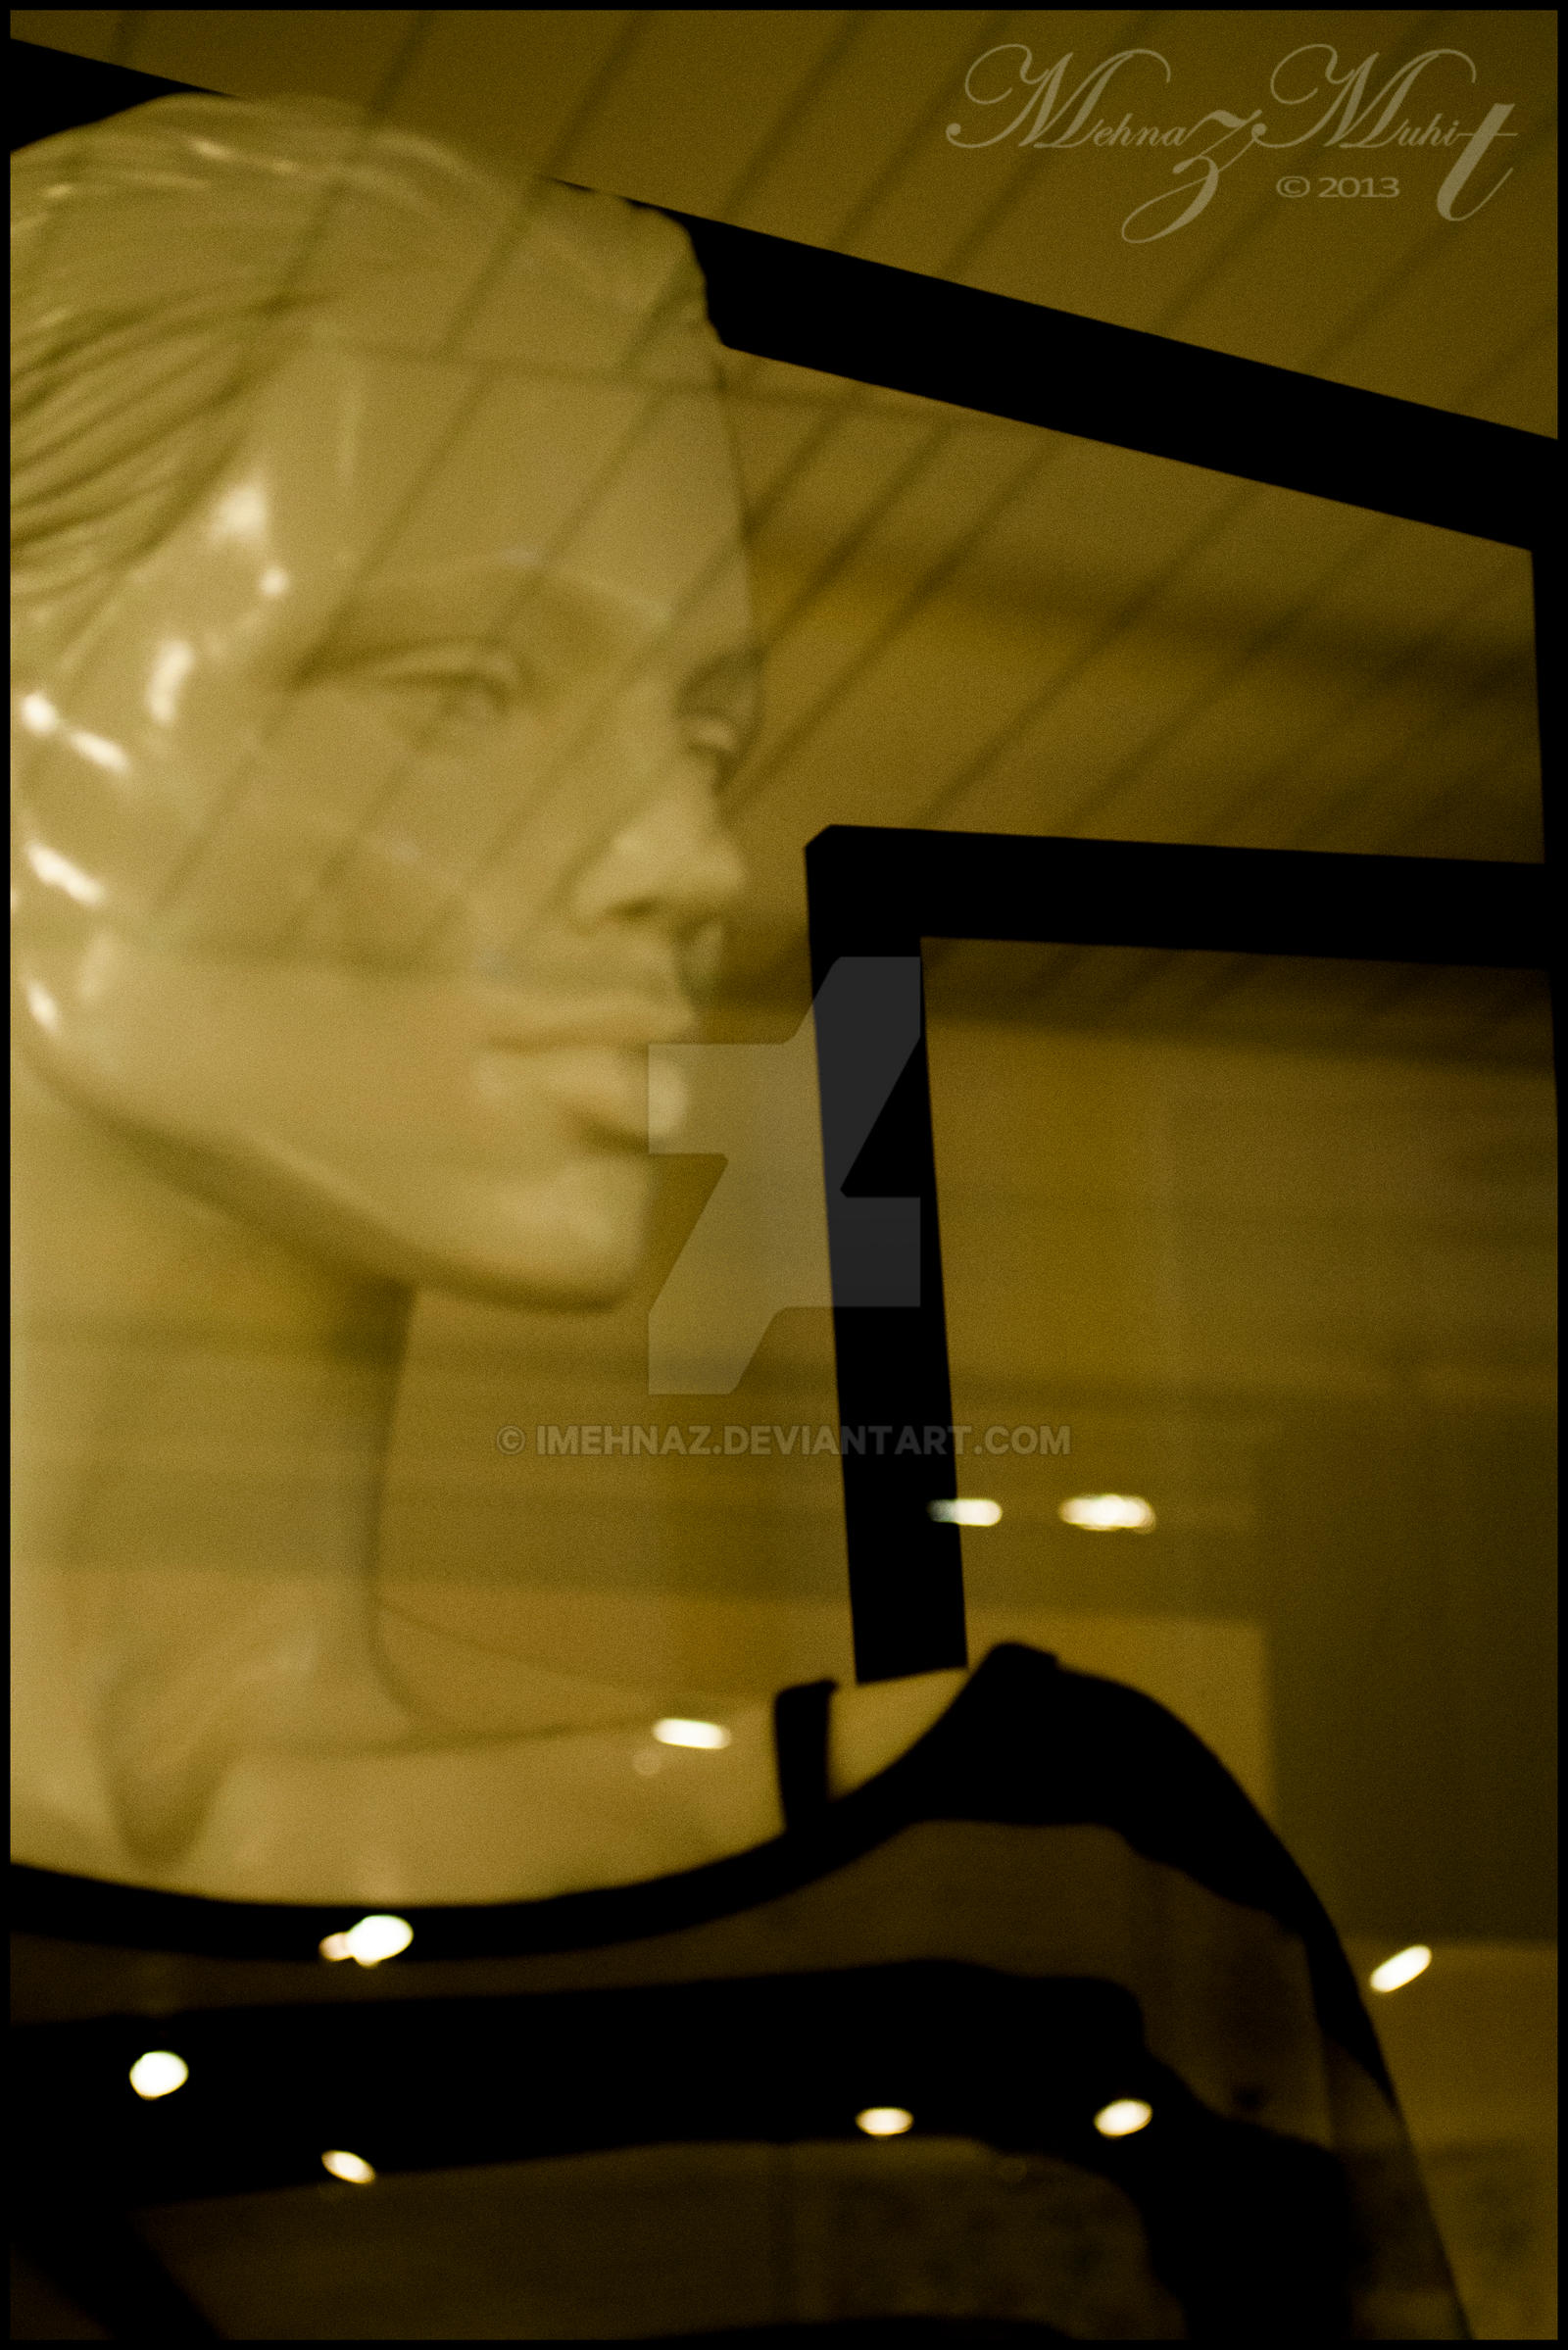 The woman in the window by iMehnaz